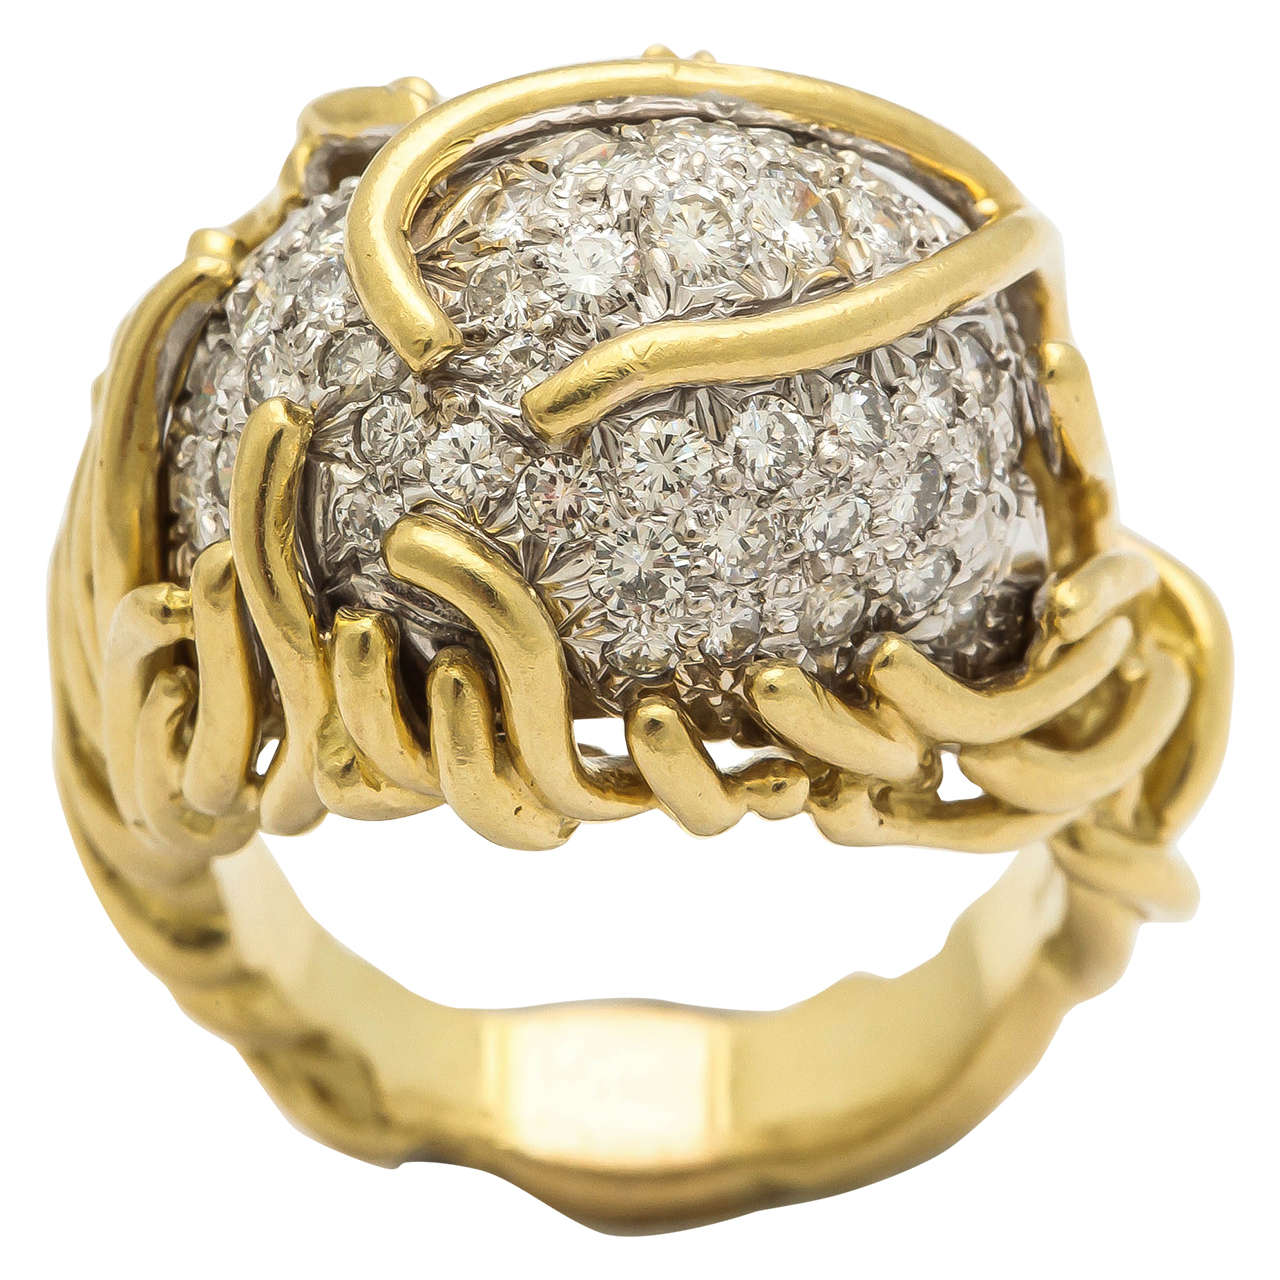 1960s Heavy Diamond Gold Dome Cocktail Ring at 1stdibs